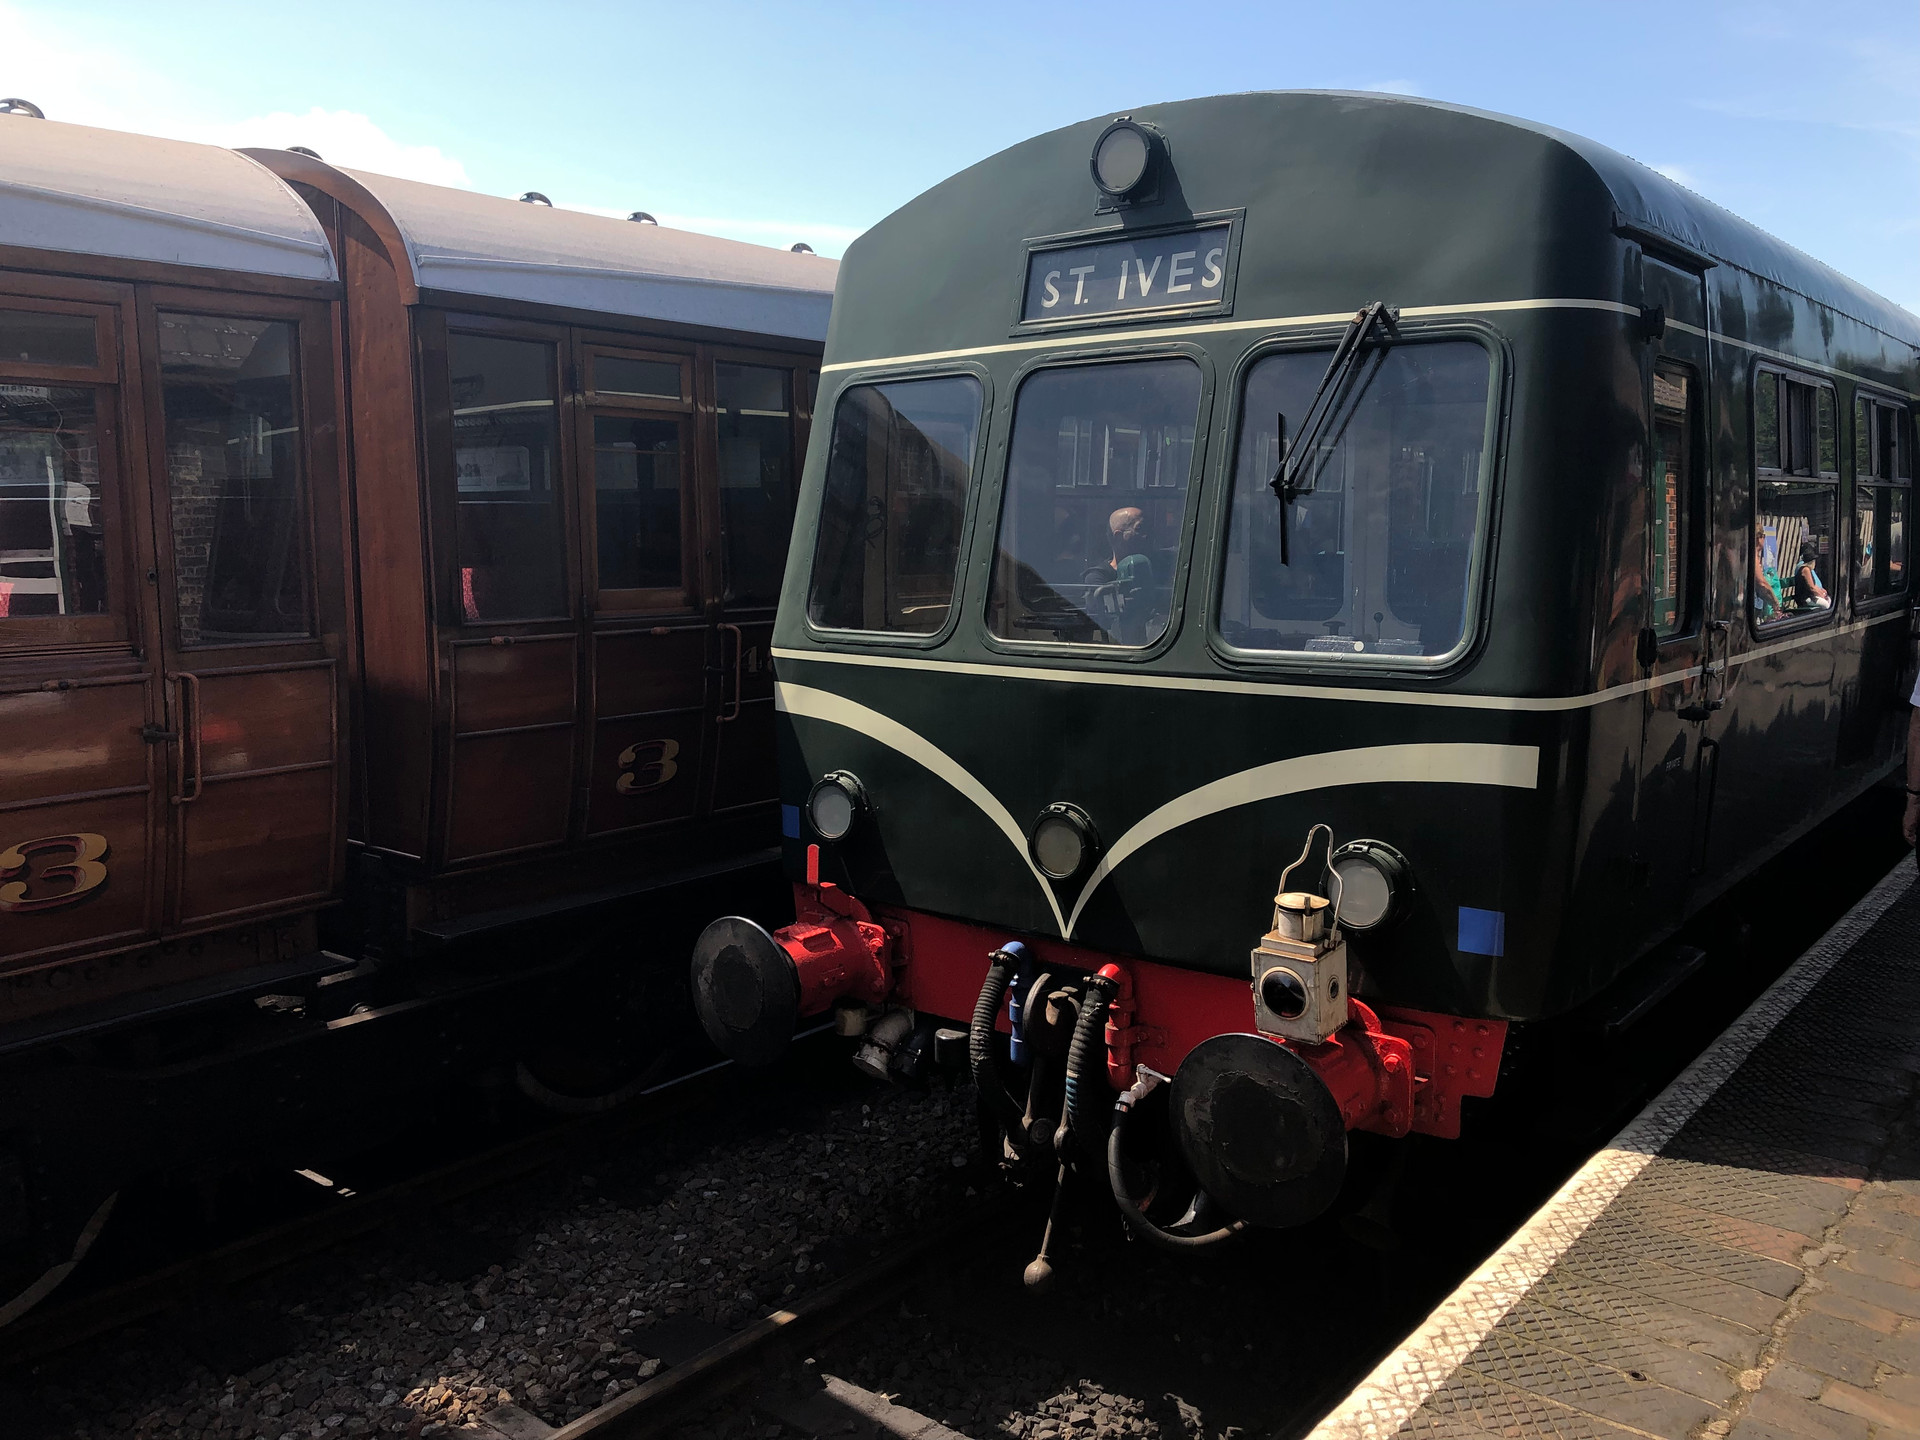 DMU AT SHERINGHAM STATION ON THE NORTH NRFOLK RAILWAY